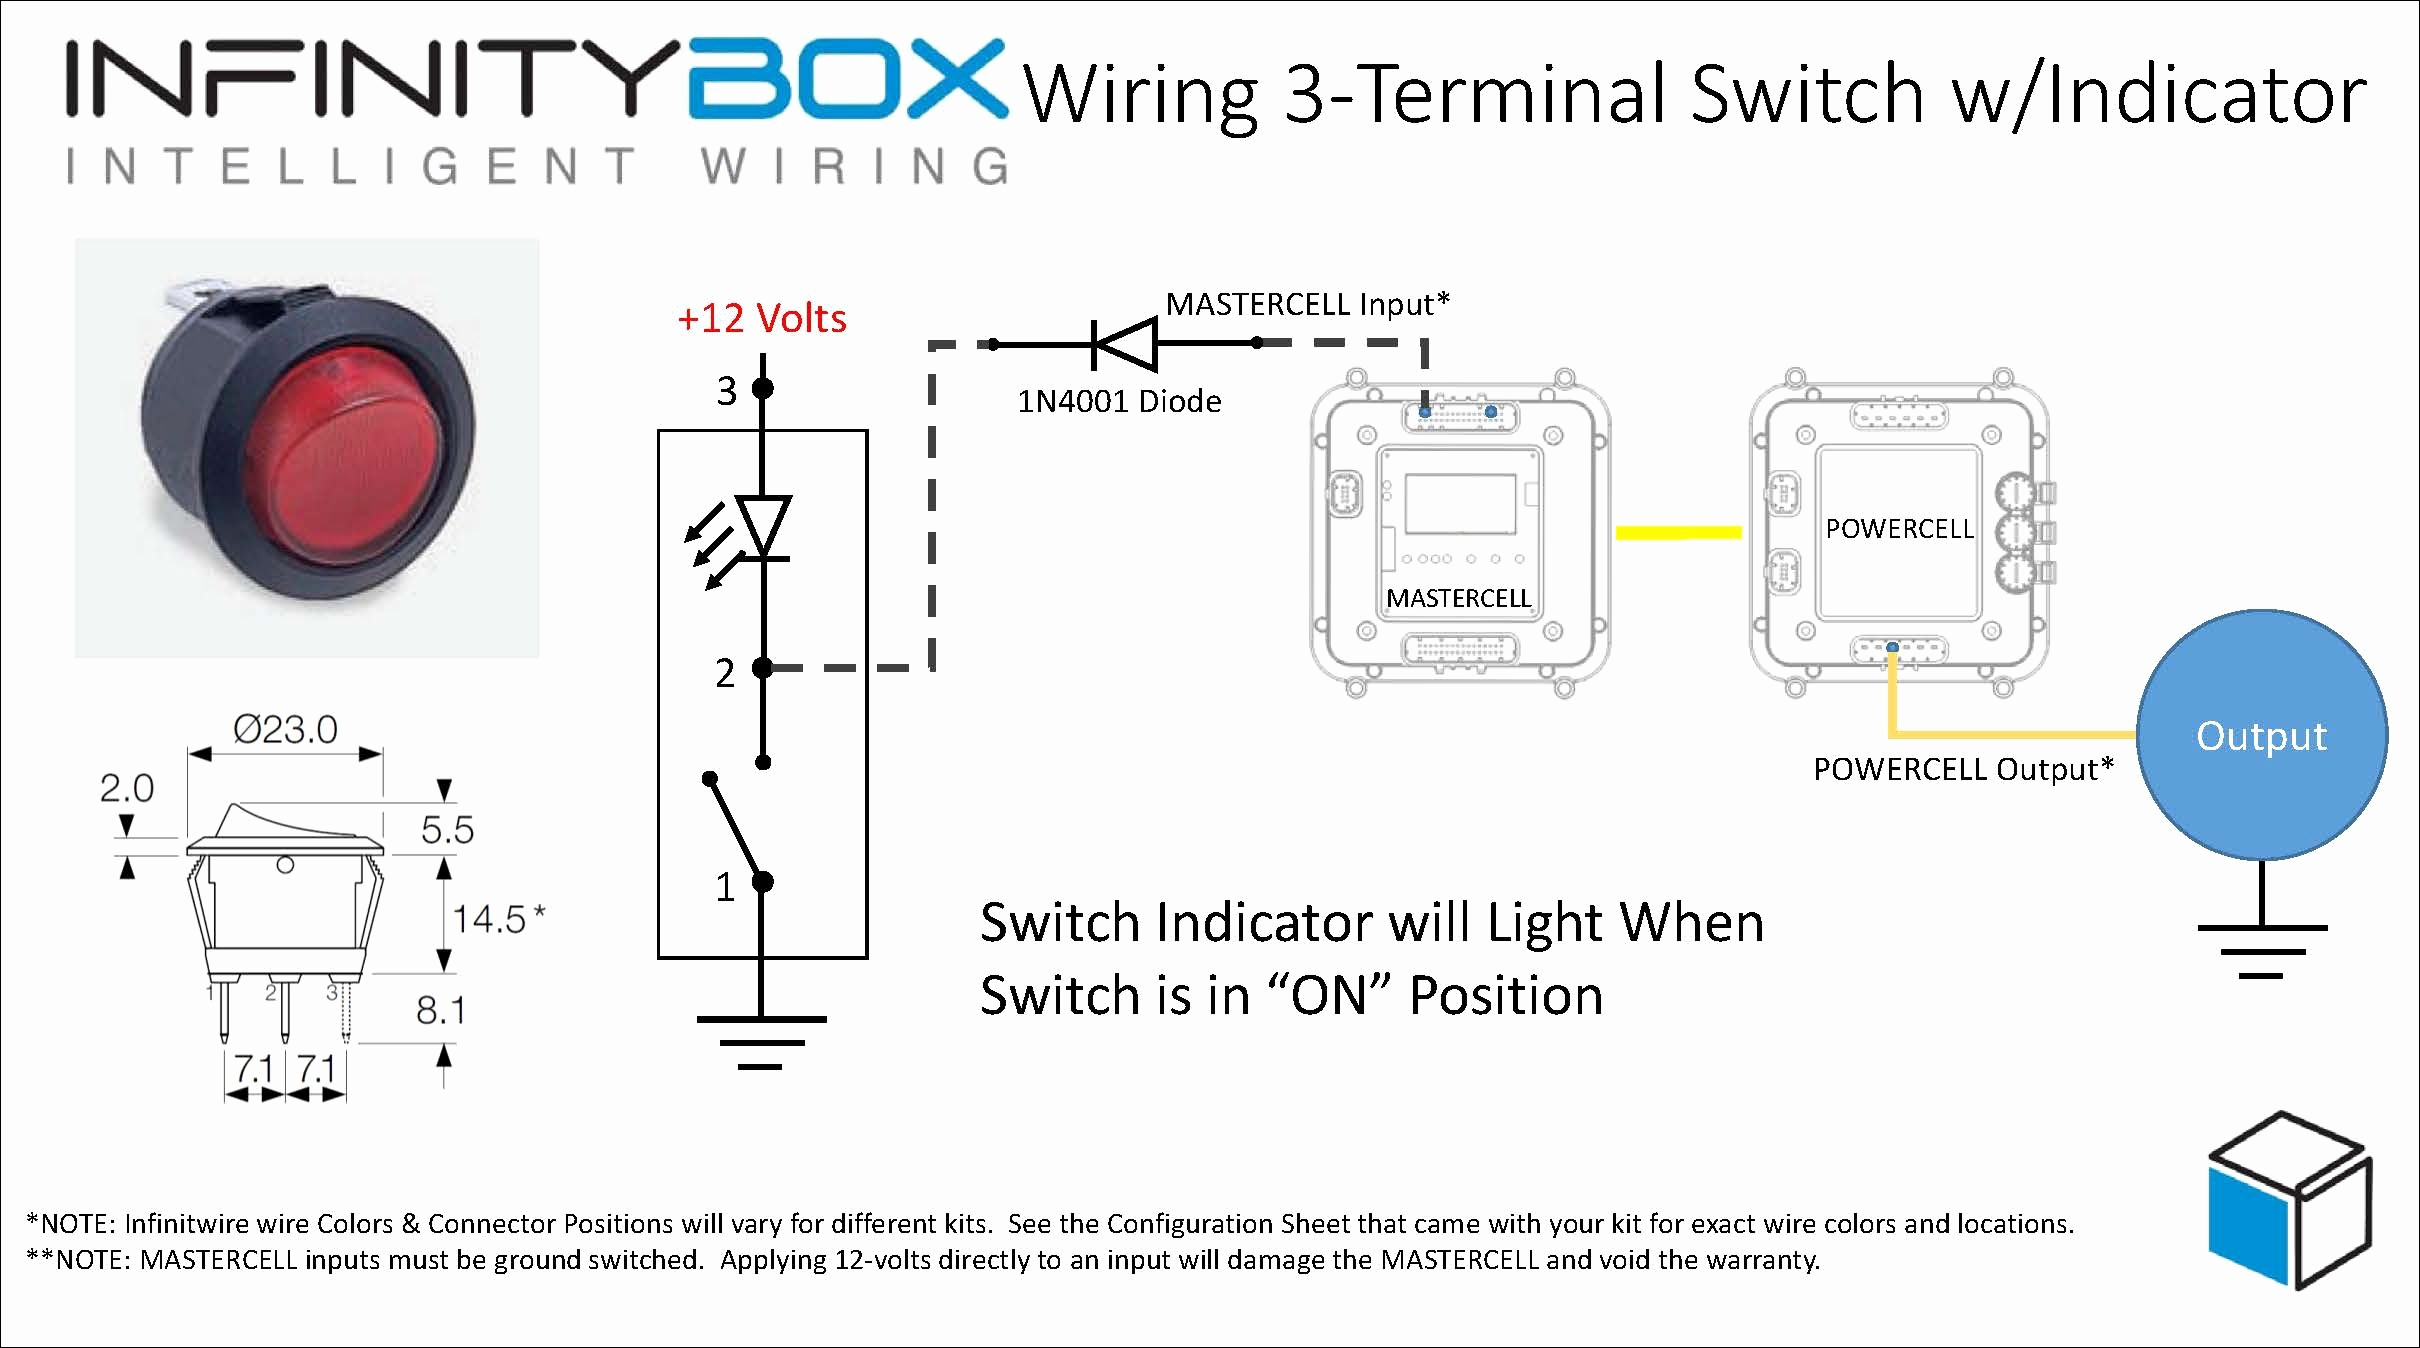 Carling Technologies Rocker Switch Wiring Diagram from wholefoodsonabudget.com